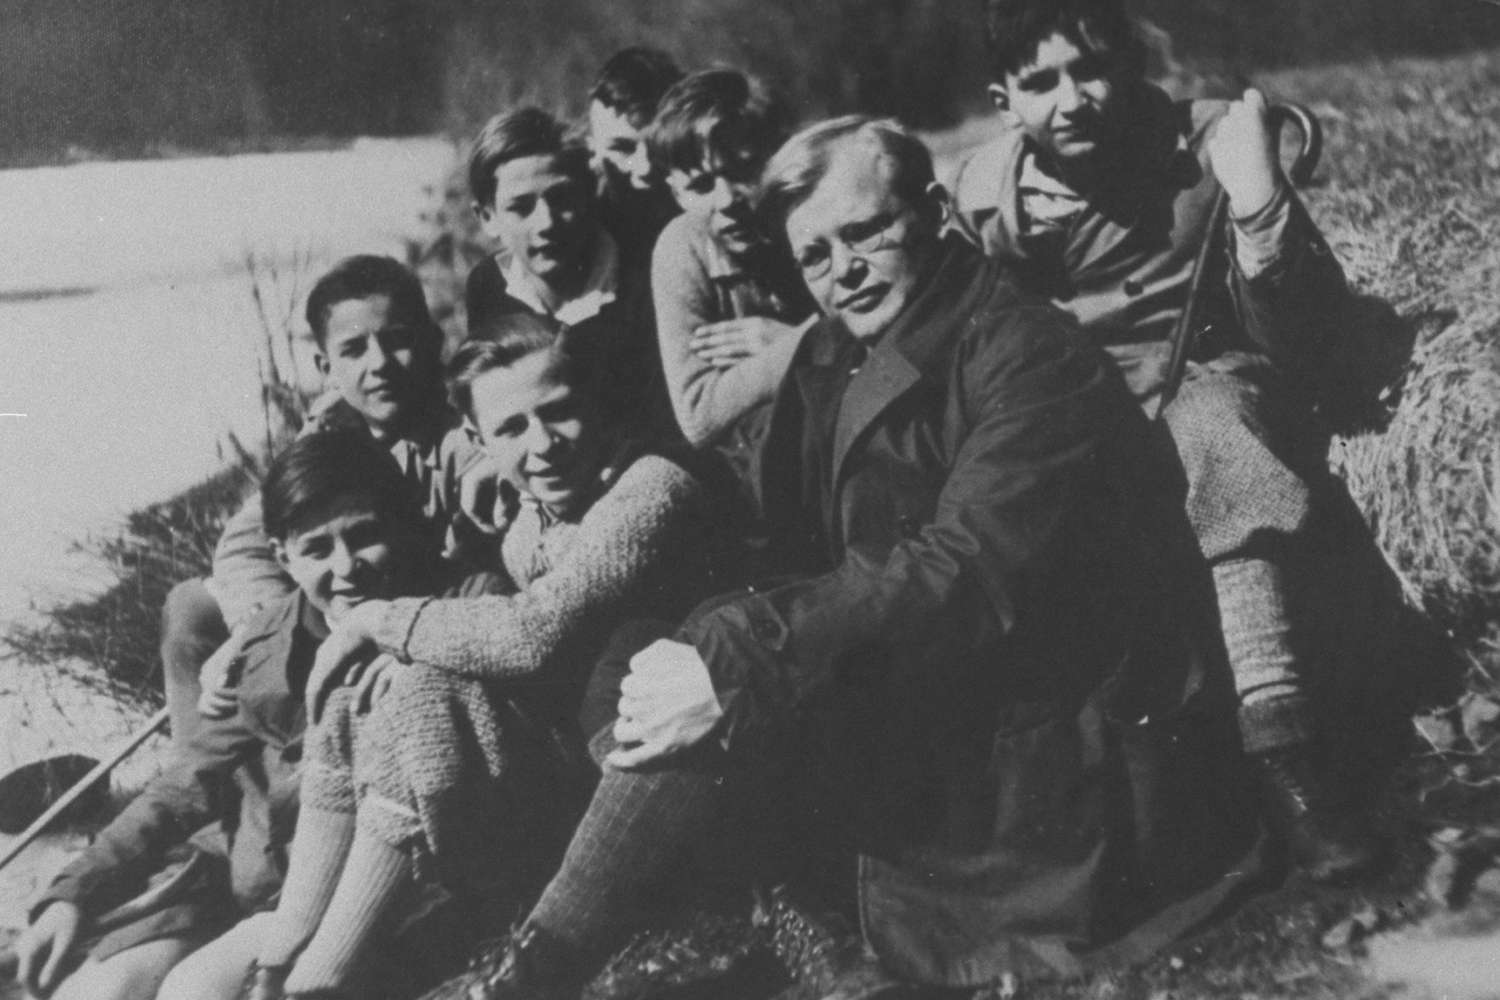 Young Dietrich Bonhoeffer with workers' sons on an outing near Berlin.